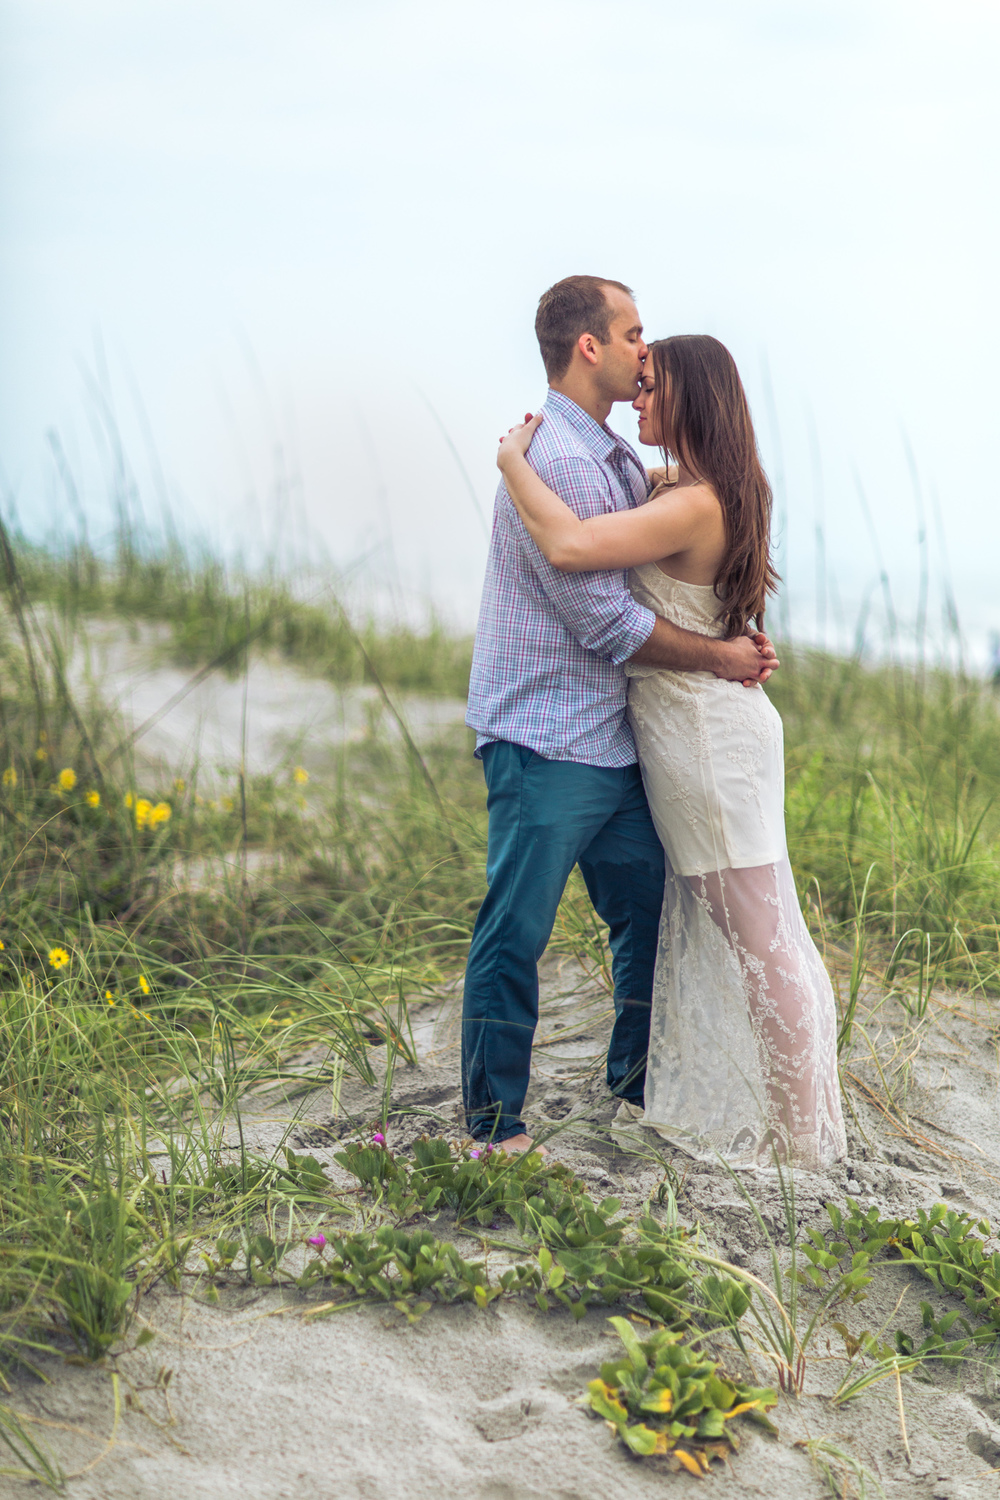 Tribe Archipelago LXC Cocoa Beach Engagement photography #LooksLikeFilm Space Coast Brevard photographer 39.jpg